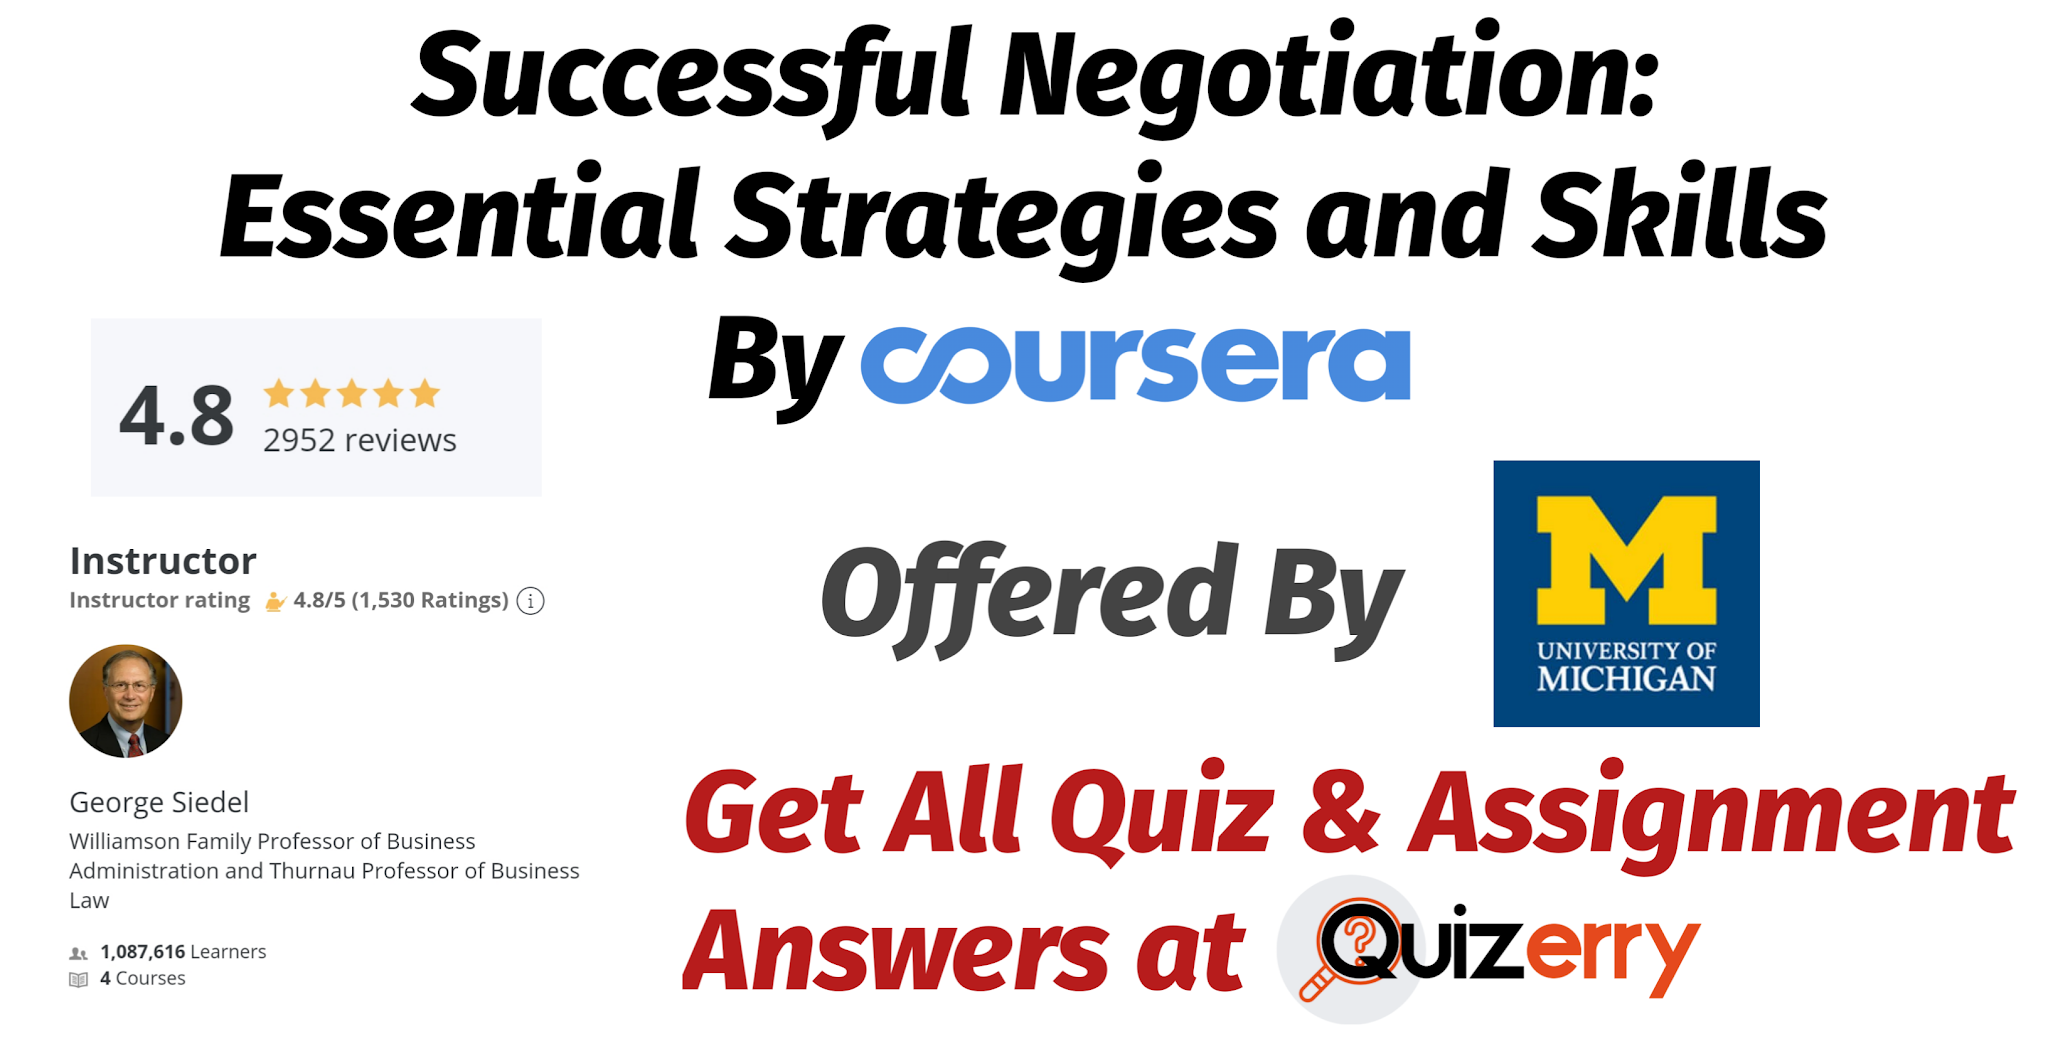 Successful Negotiation: Essential Strategies and Skills - Coursera Final Quiz Answers